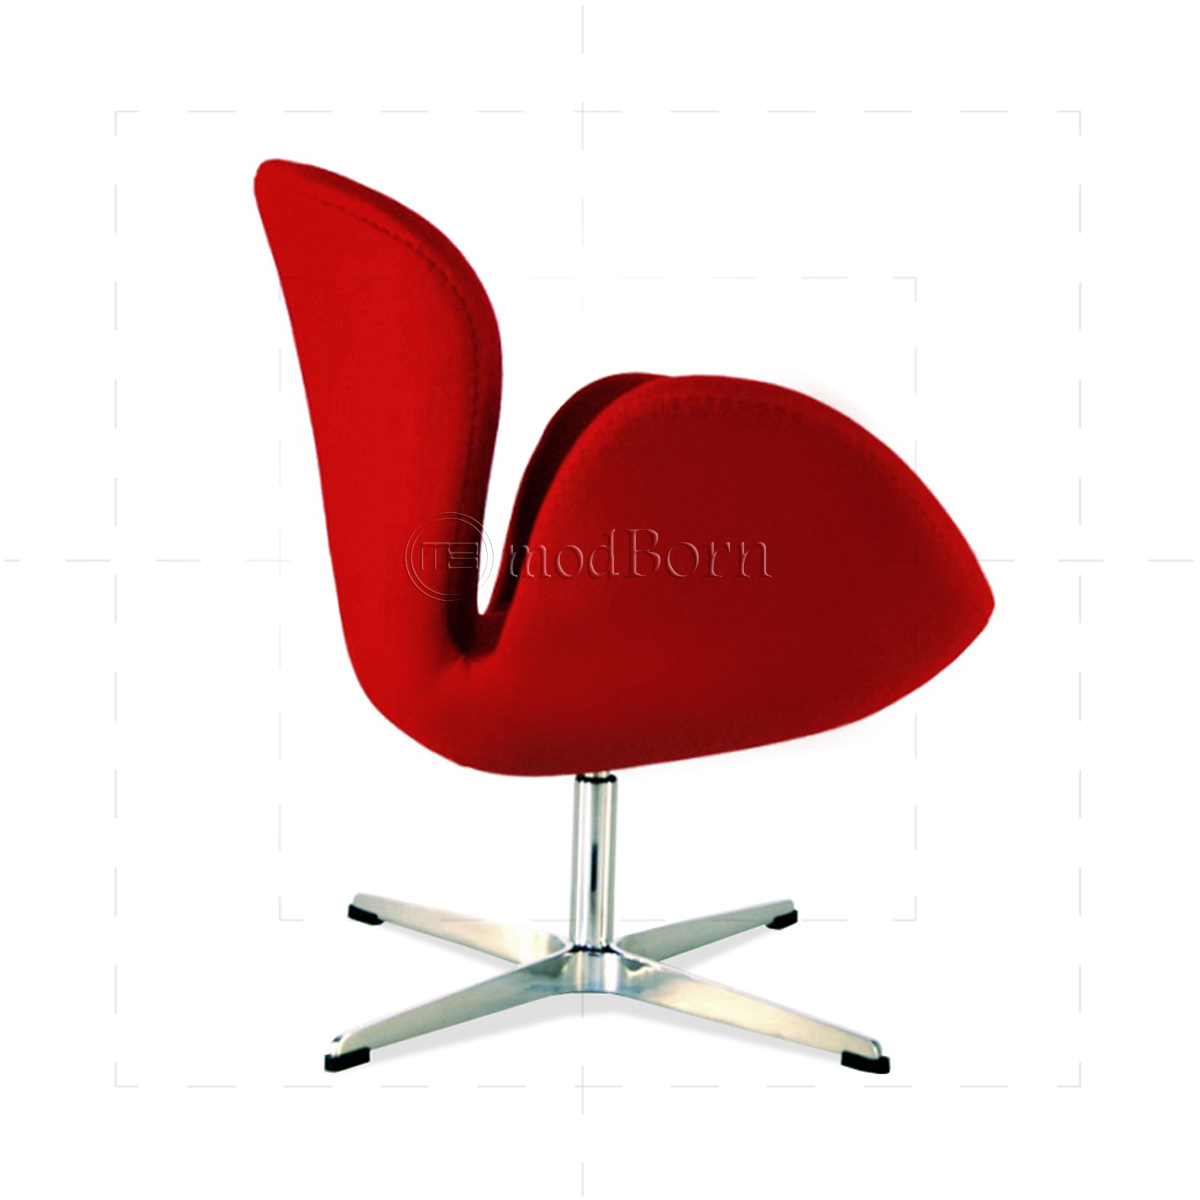 Arne jacobsen style swan chair red cashmere wool replica for Arne jacobsen stuhl replica